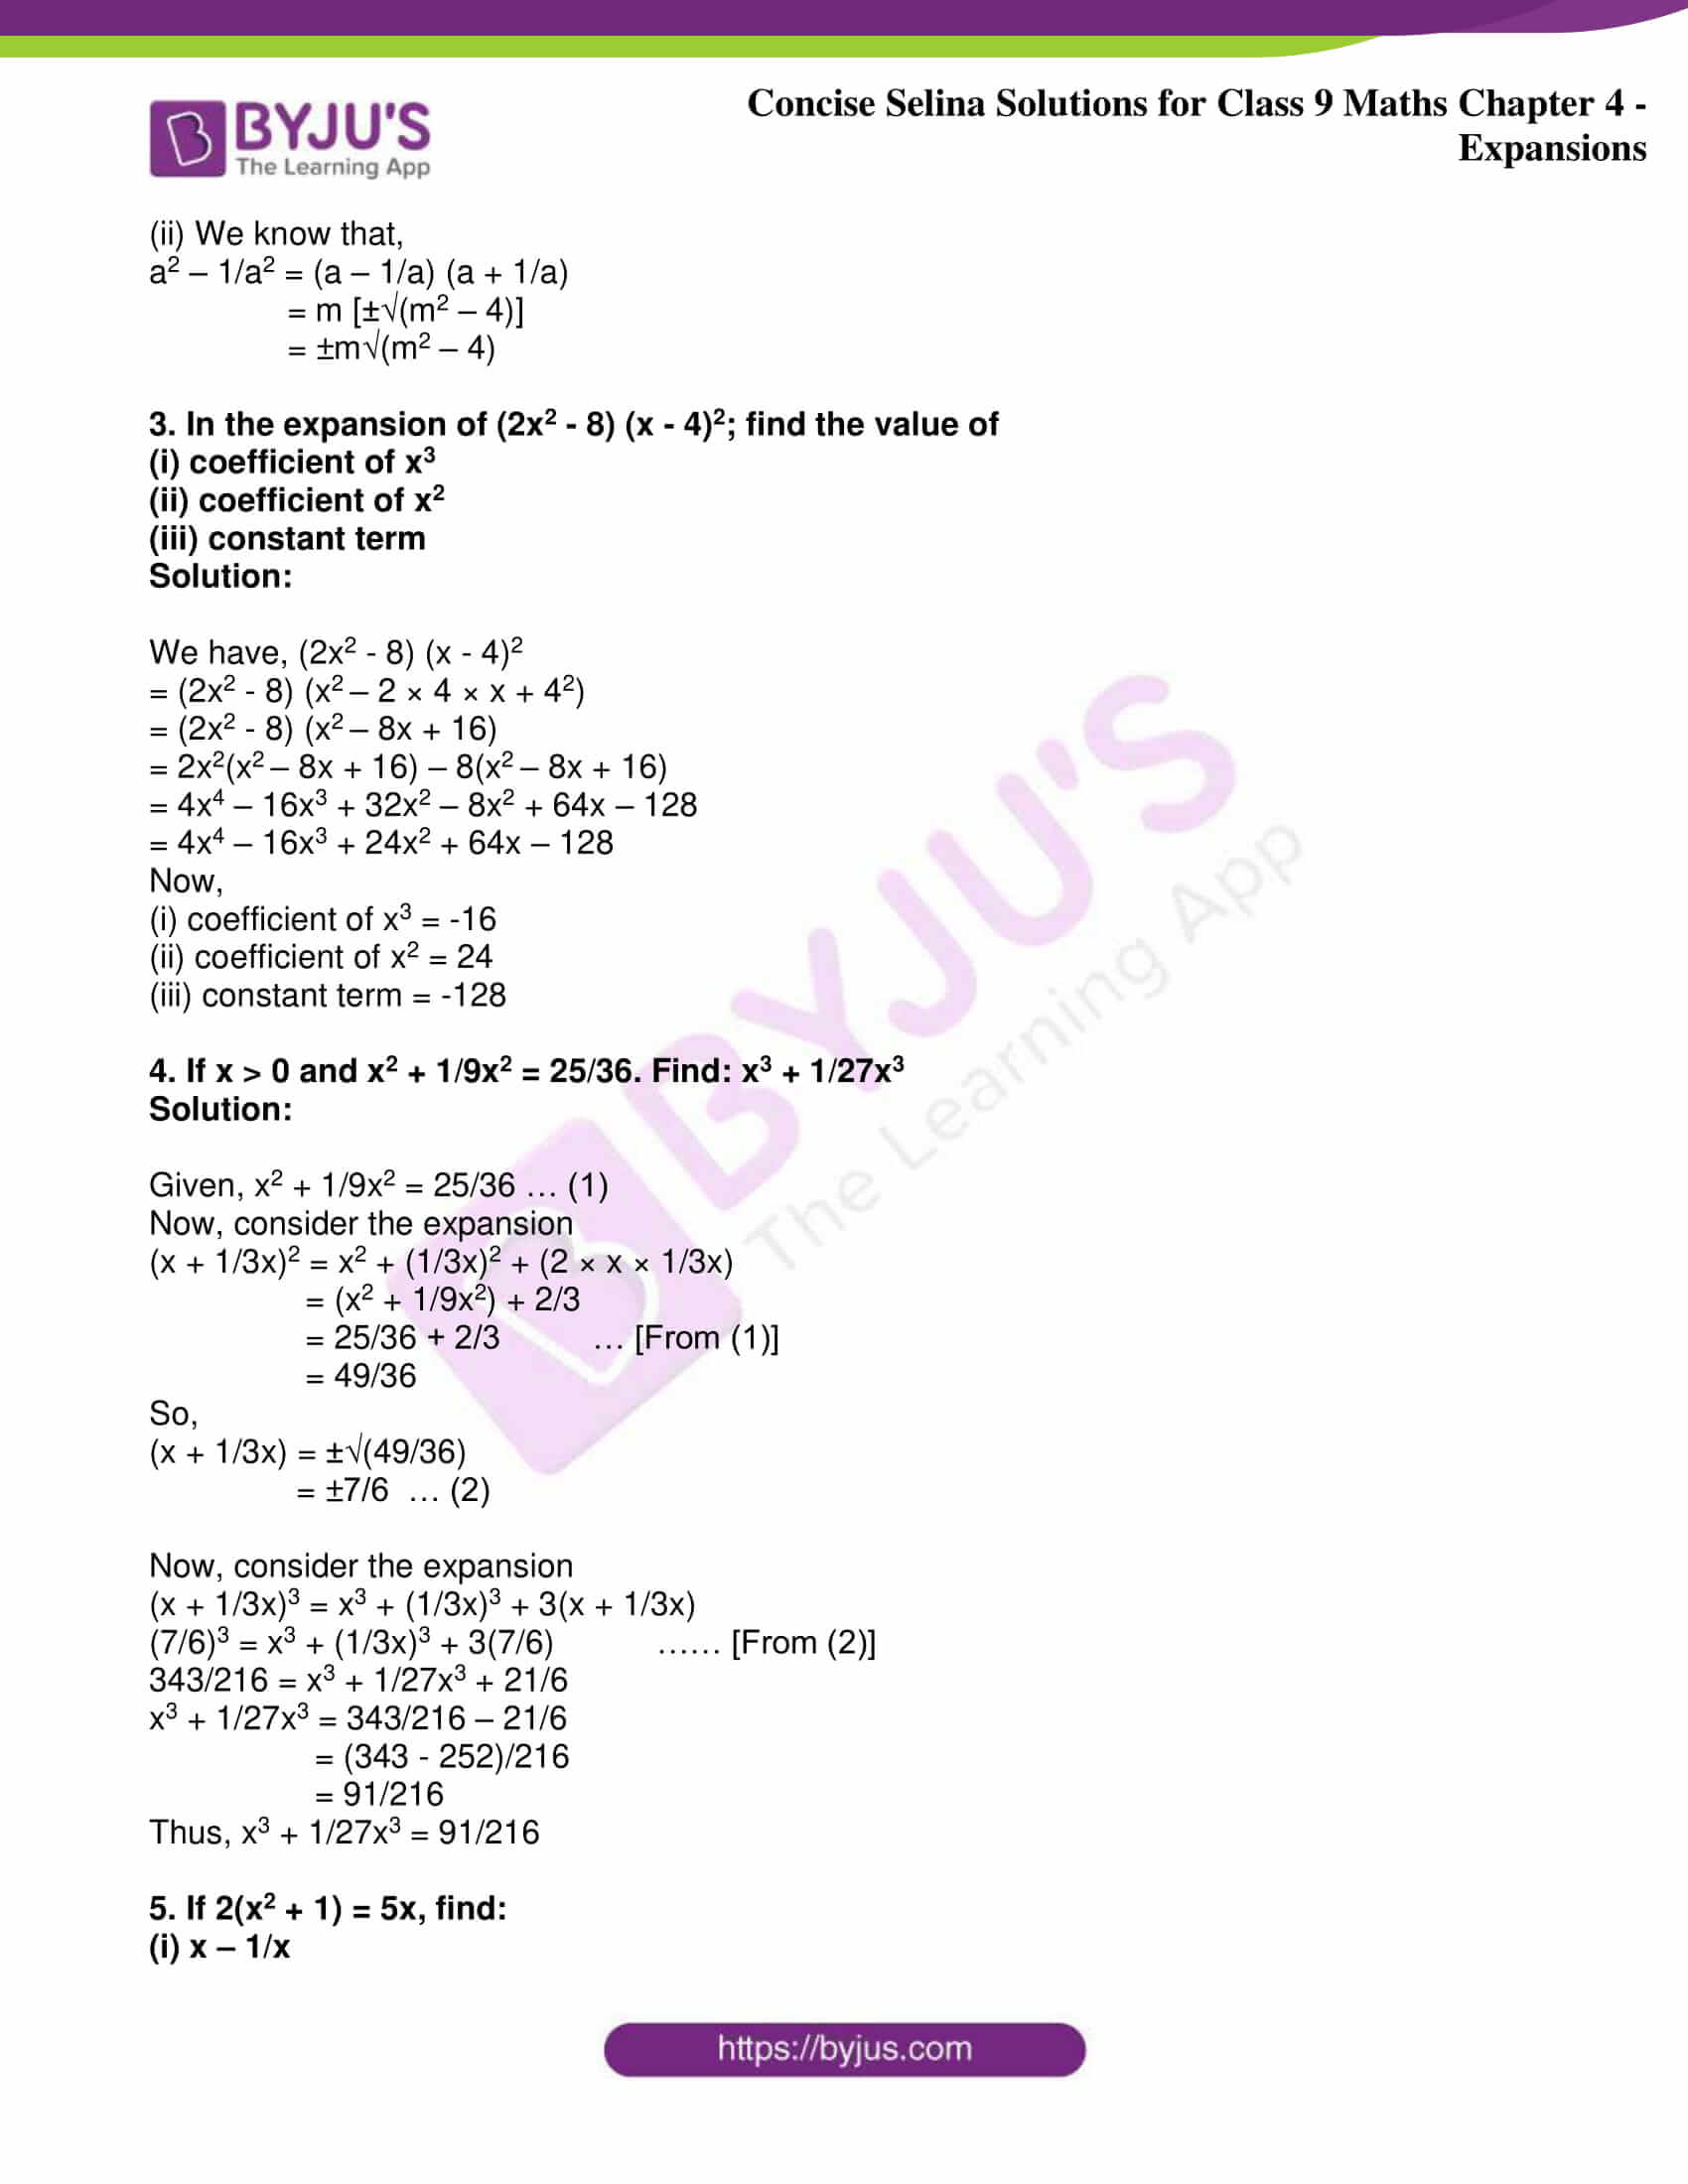 icse class 9 maths may10 selina solutions chapter 4 expansions 22